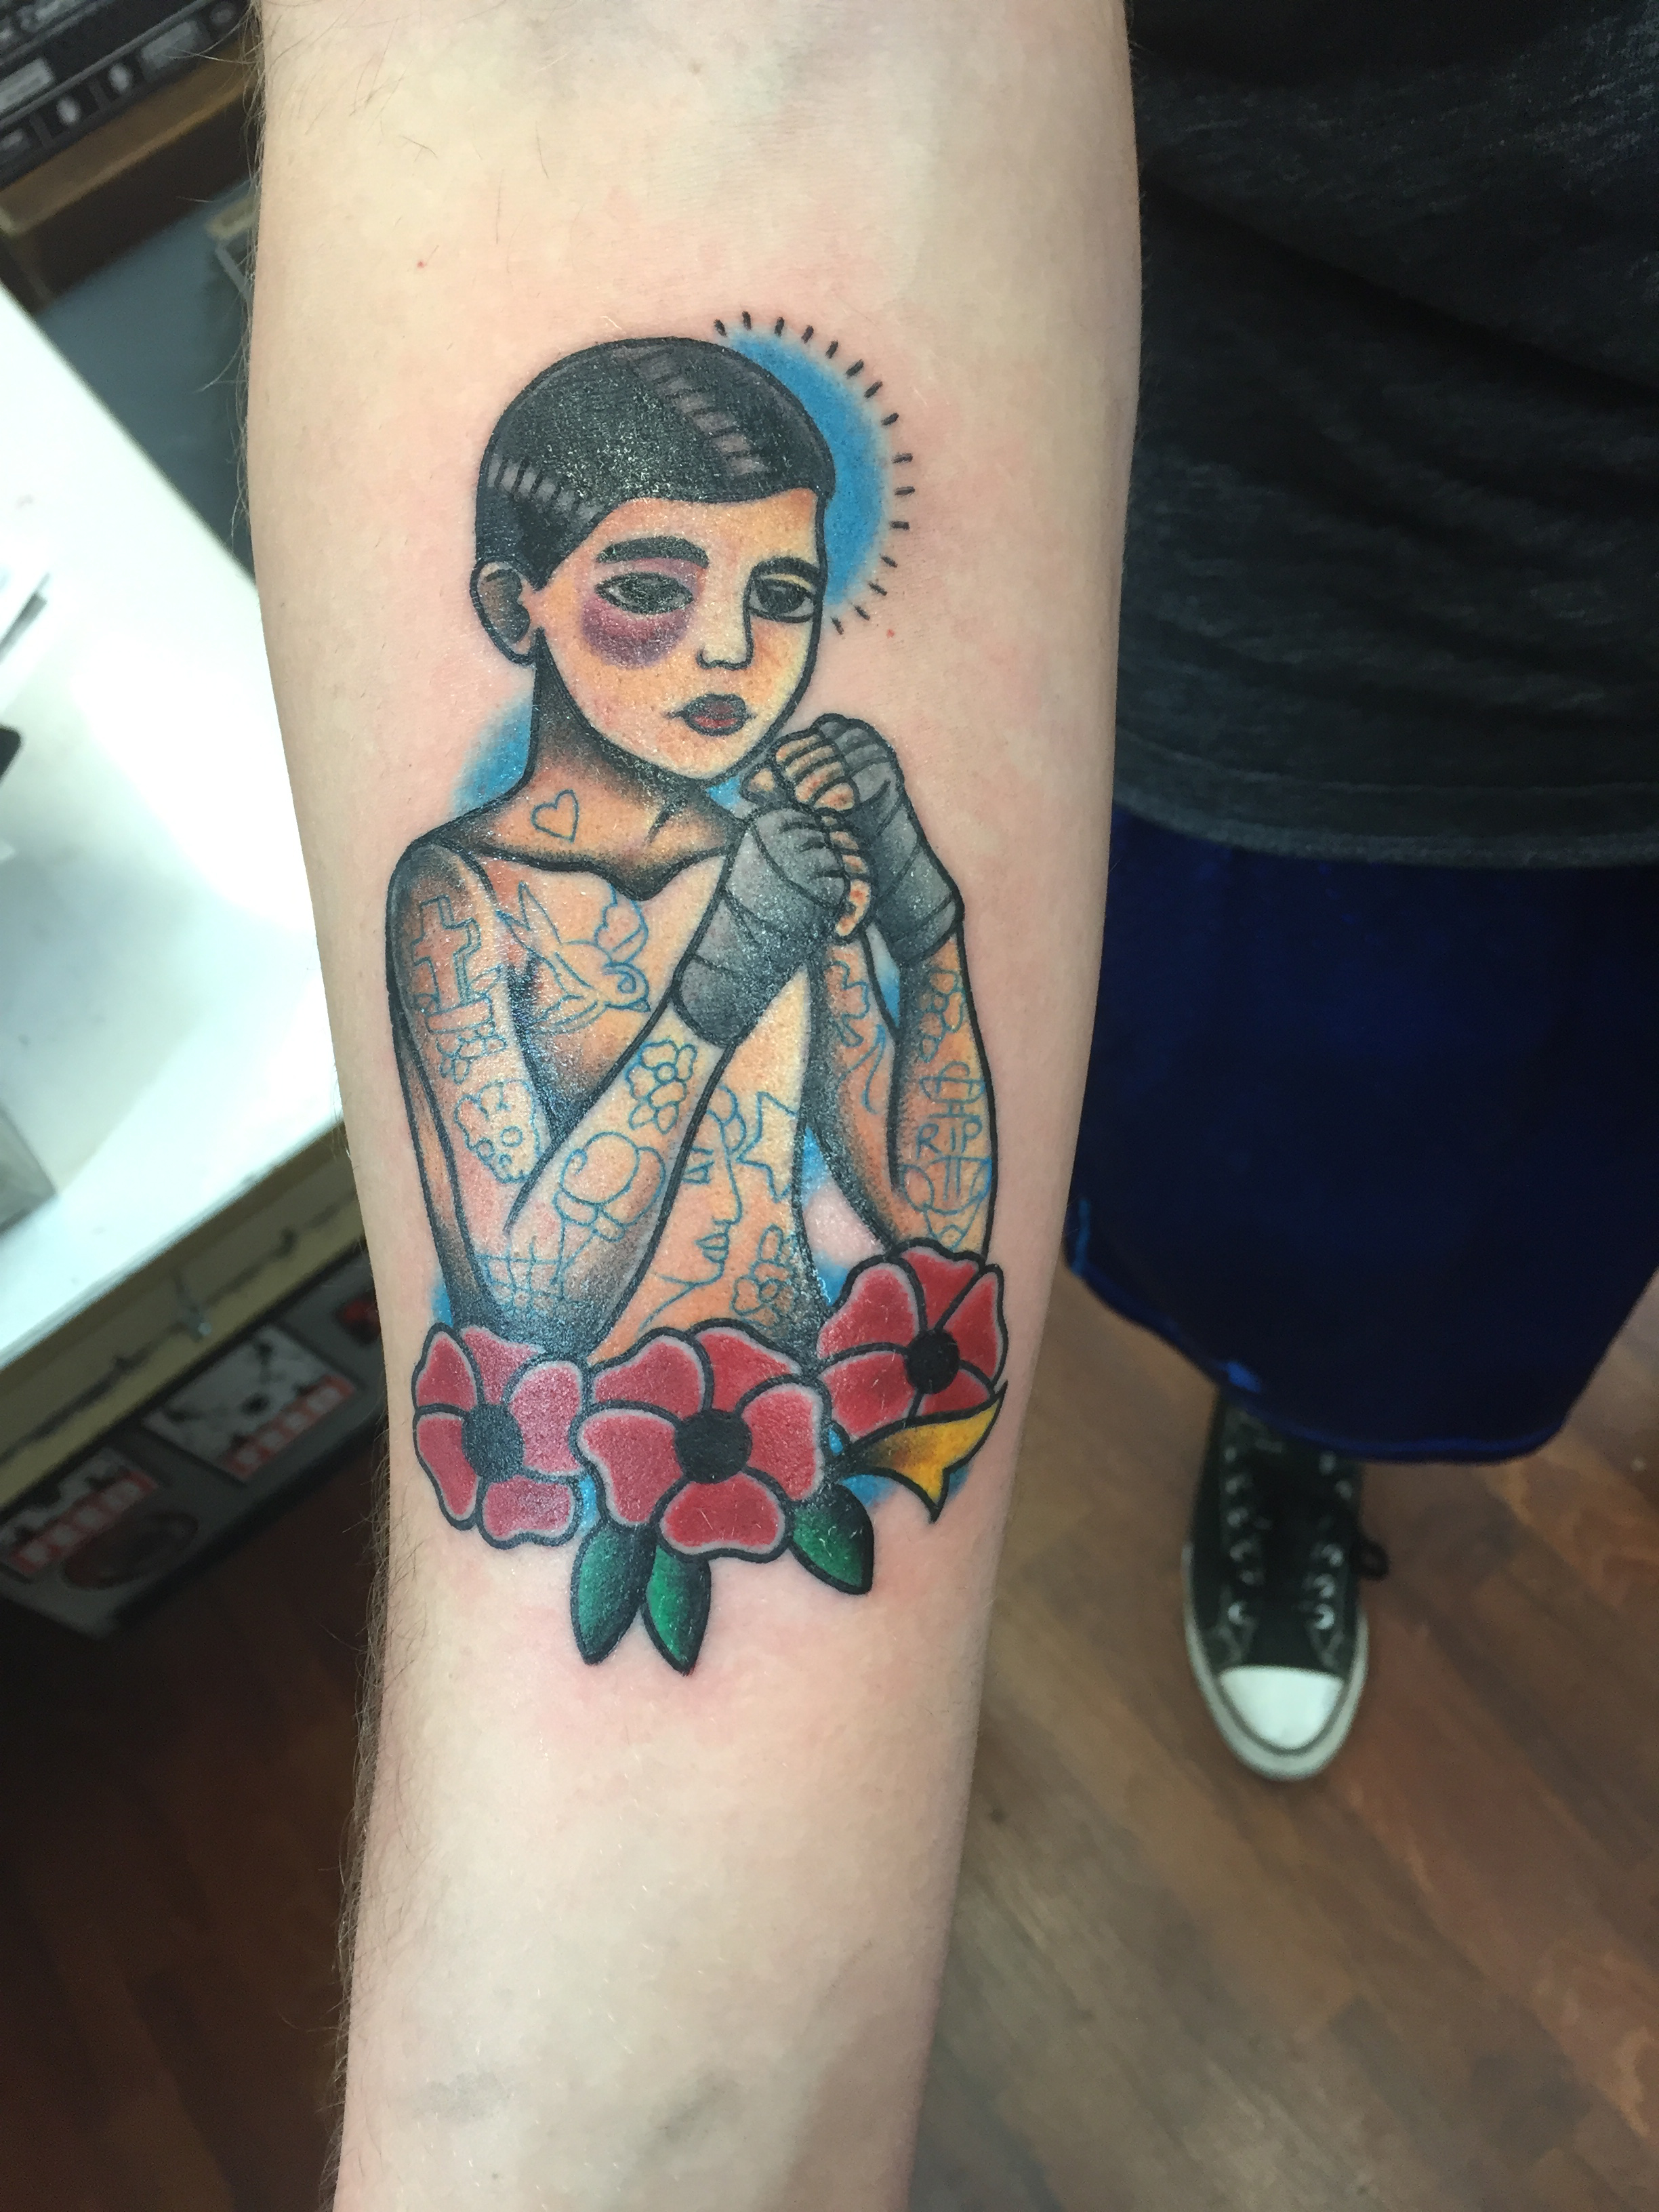 Traditional Tattoos - Funhouse Tattoo San Diego